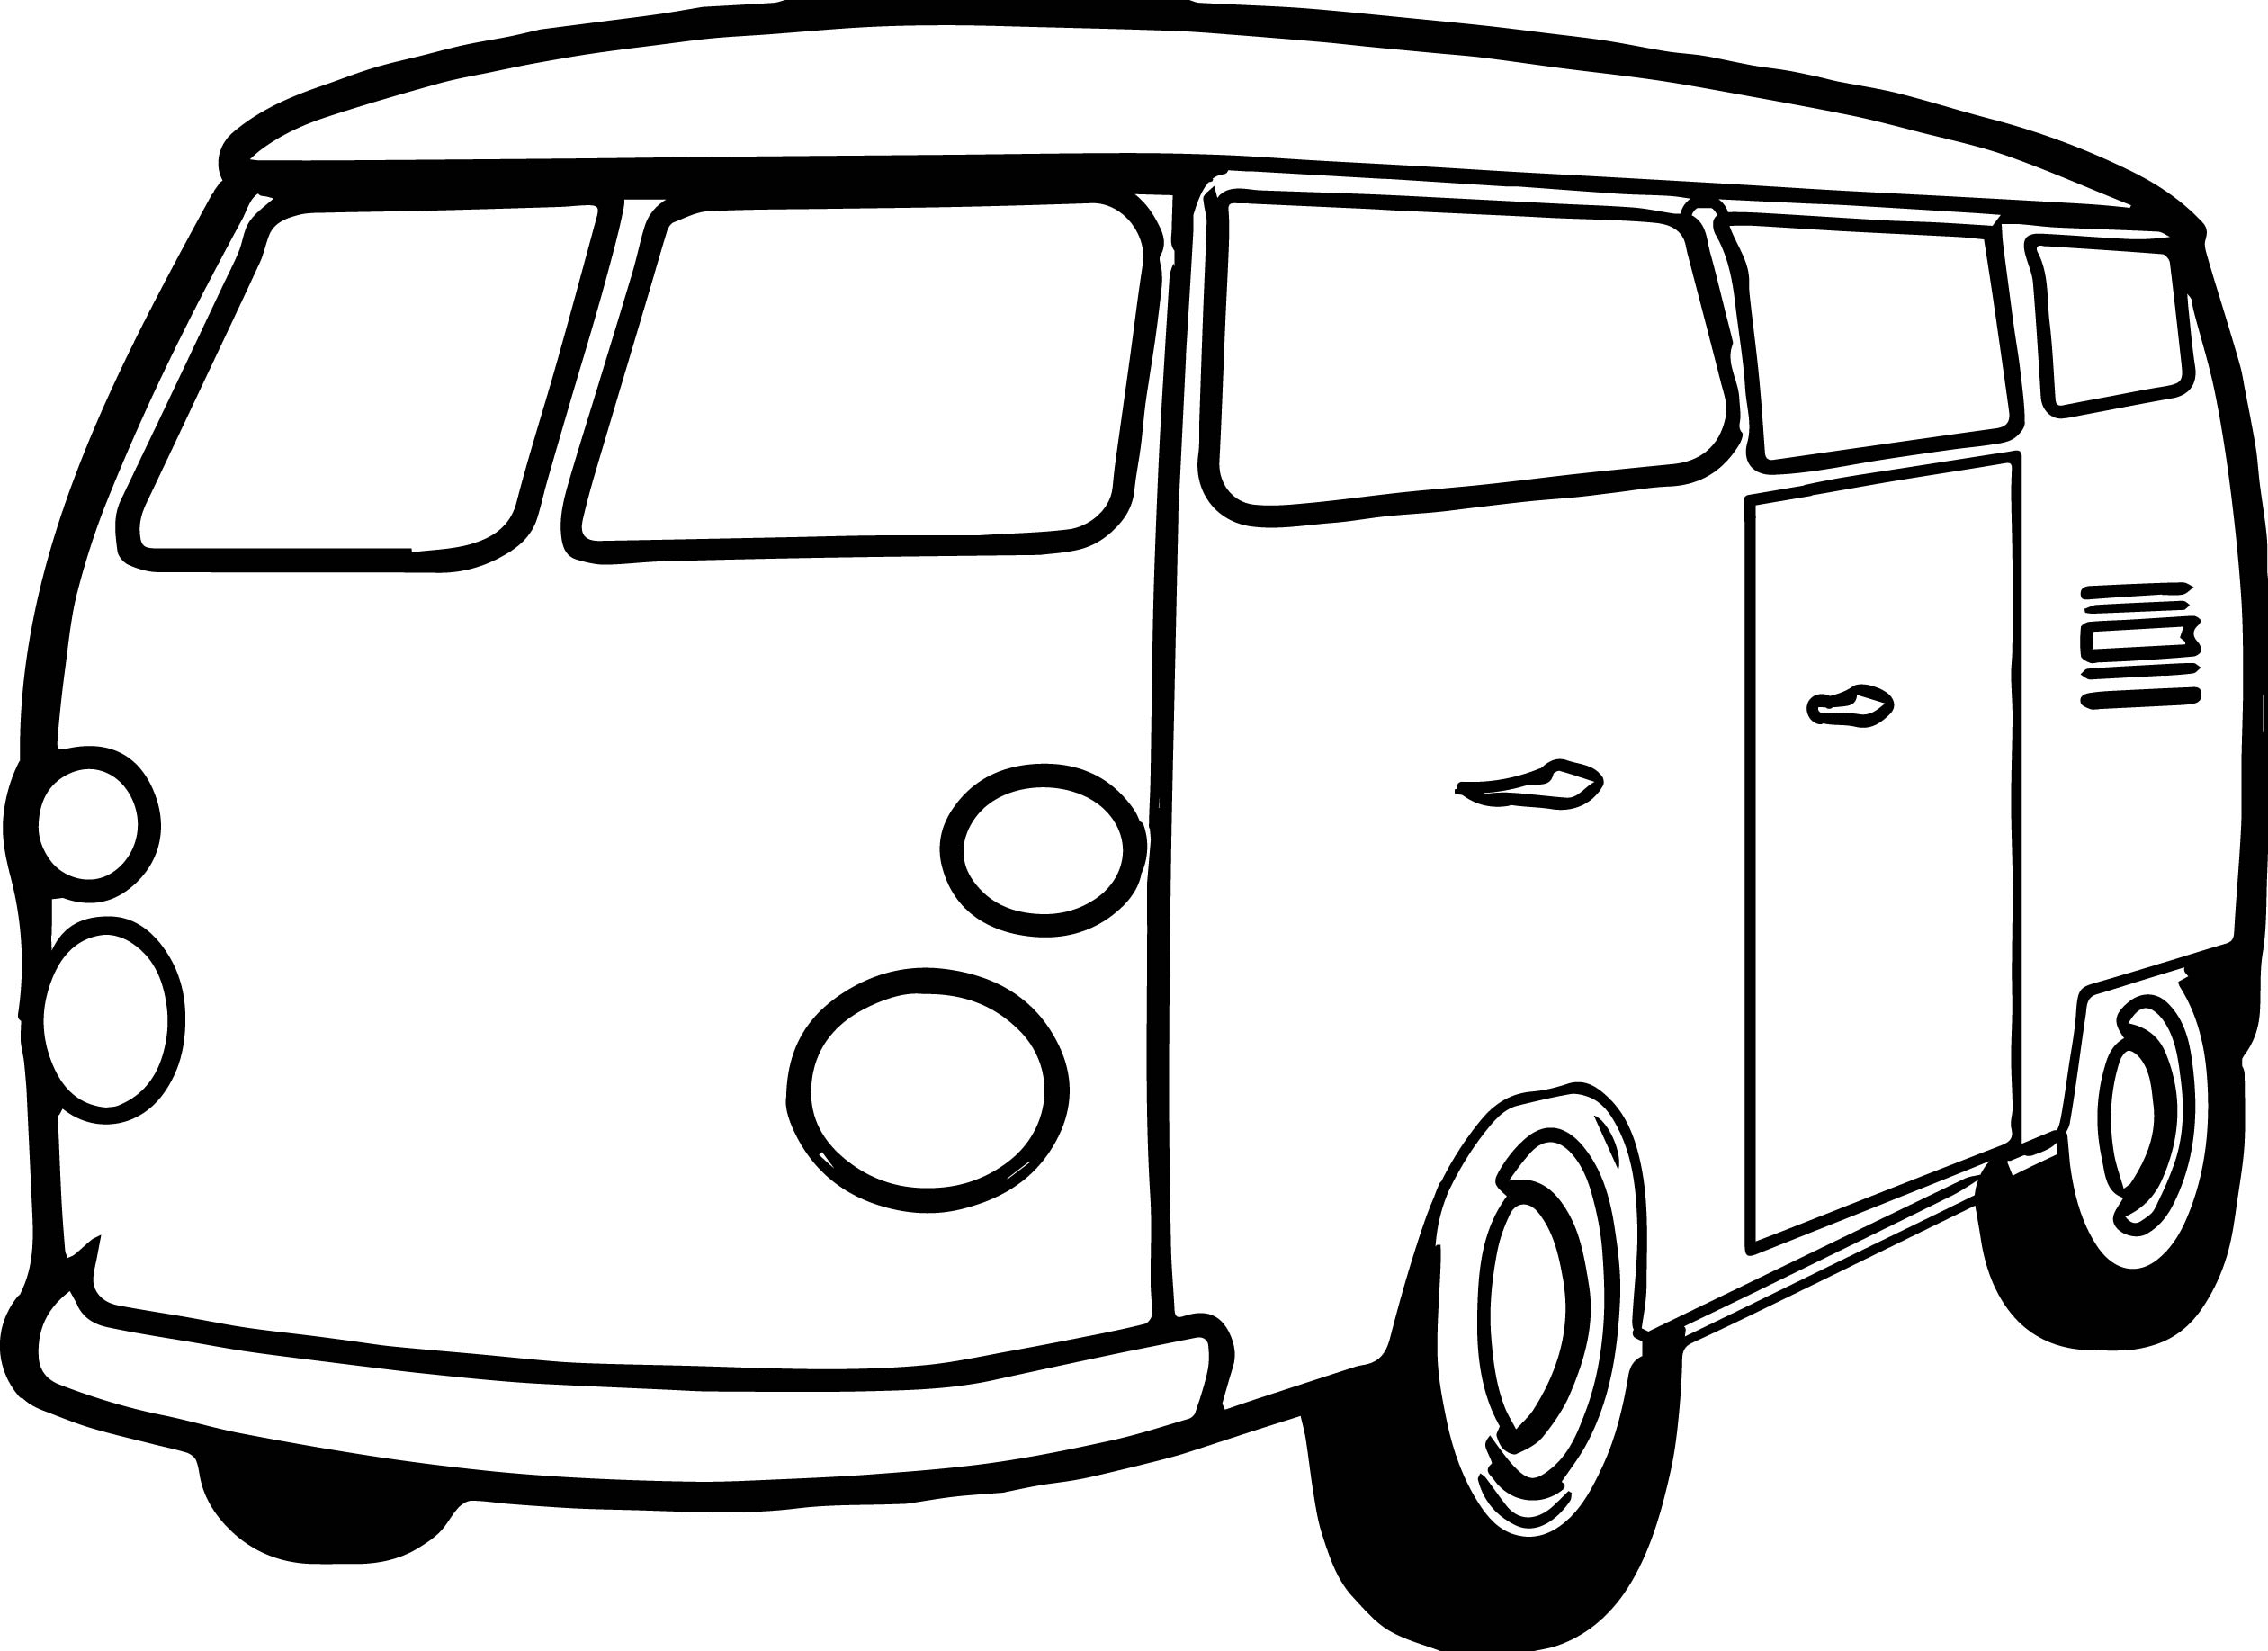 picture to coloring page - van minibus coloring page